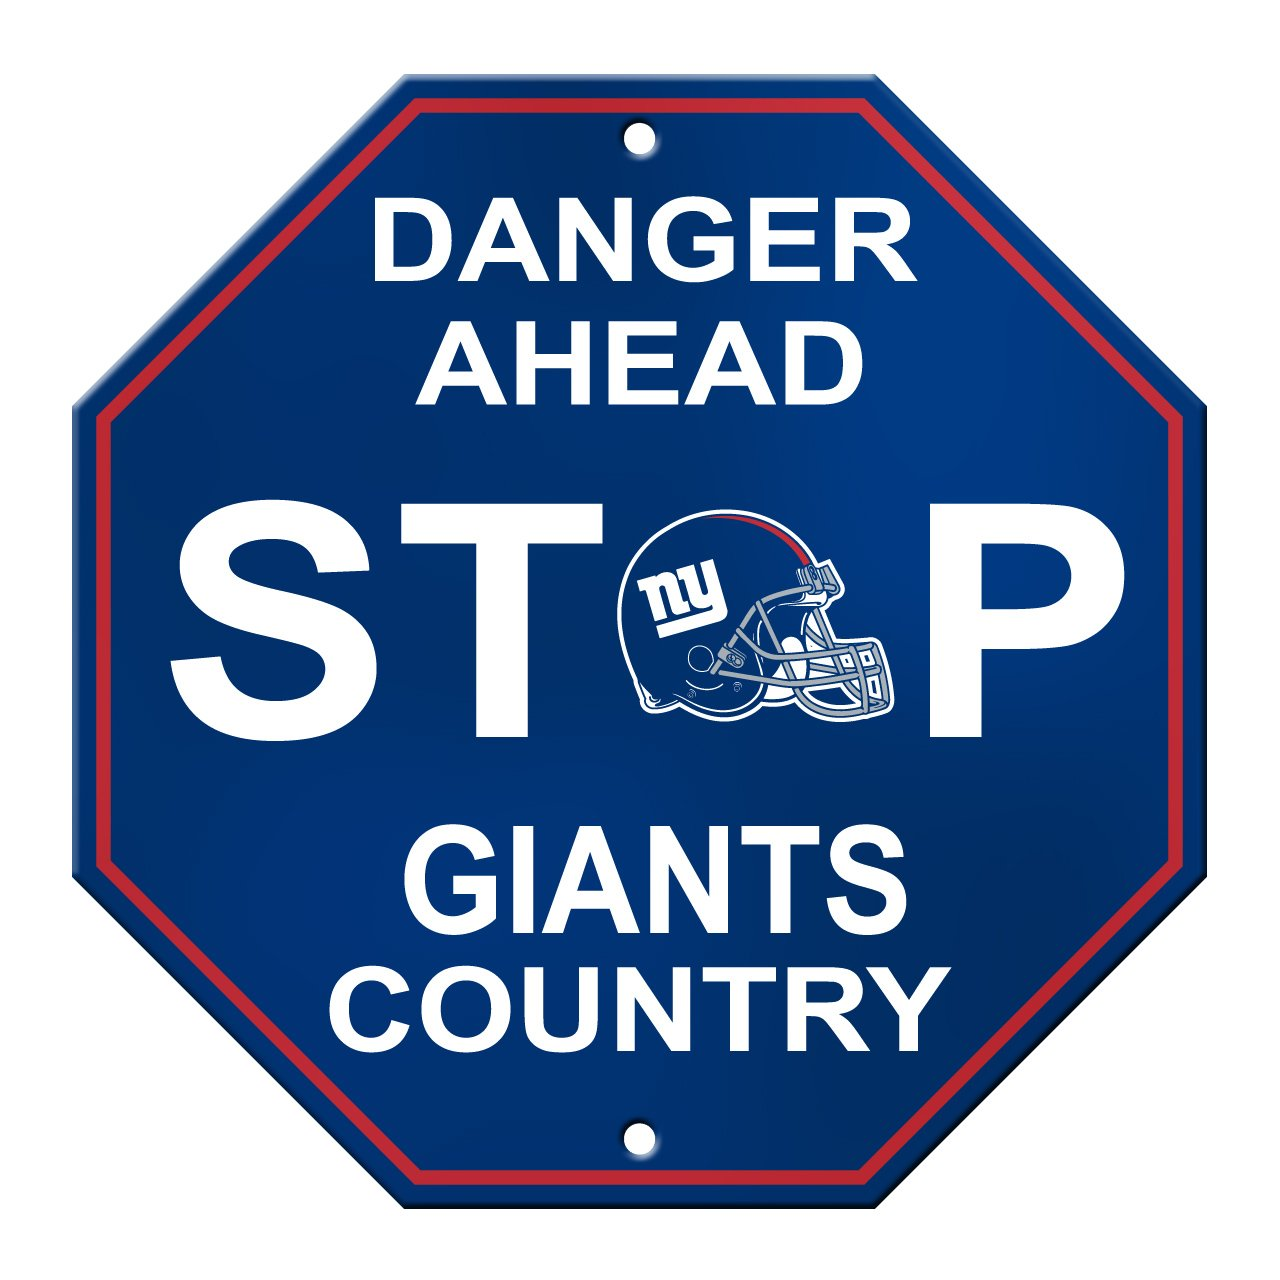 Stop Signs in Spain Nfl New York Giants Stop Sign